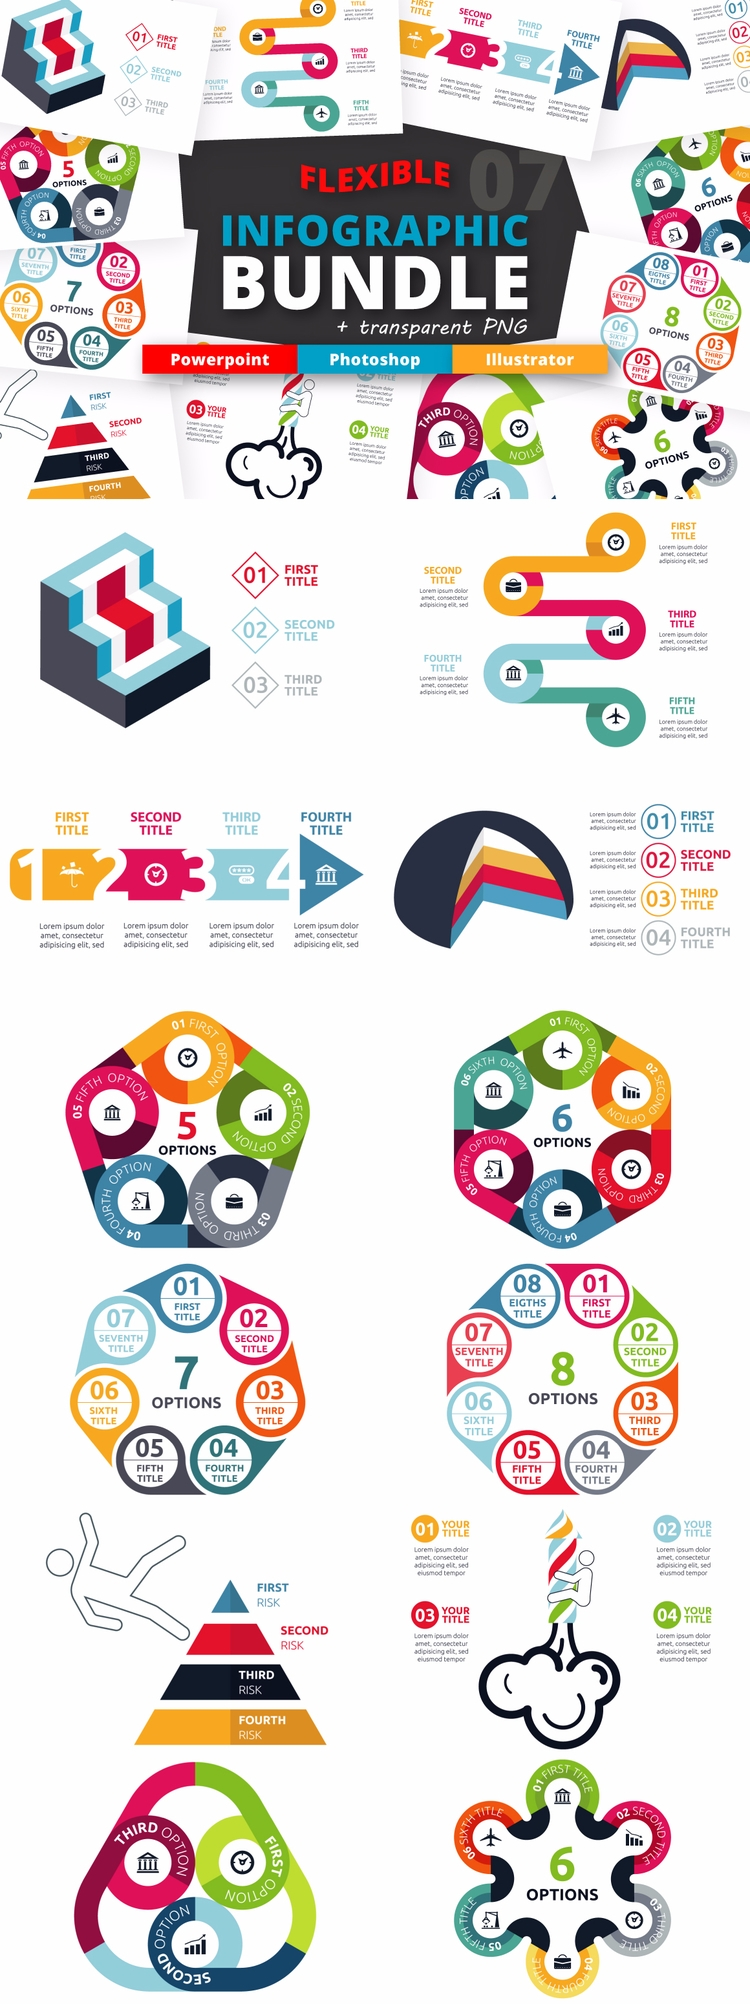 Flexible Infographic Bundle (vo - kirp | ello